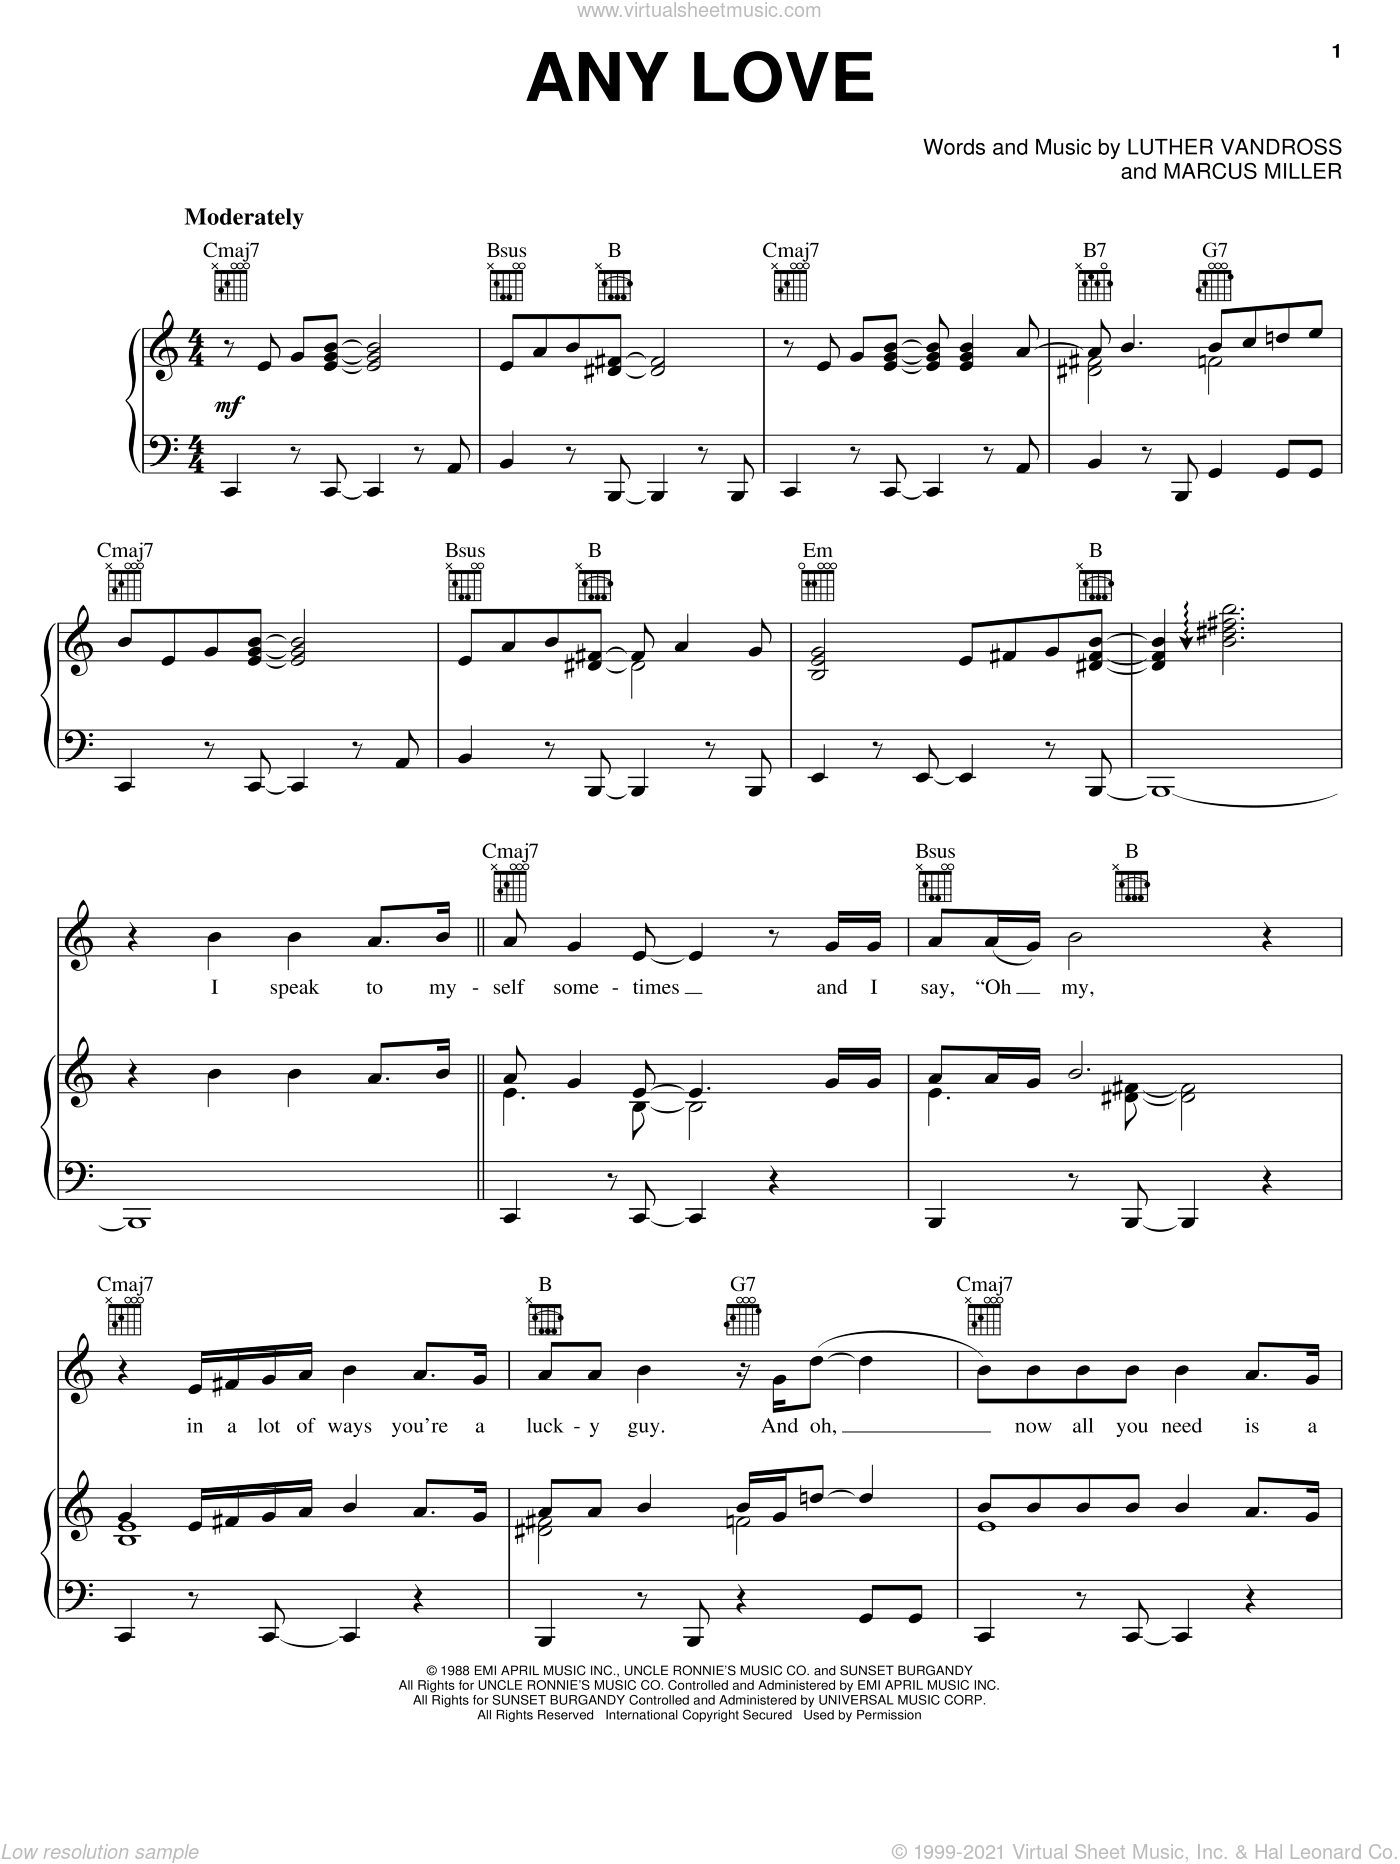 Any Love sheet music for voice, piano or guitar by Luther Vandross and Marcus Miller, intermediate skill level